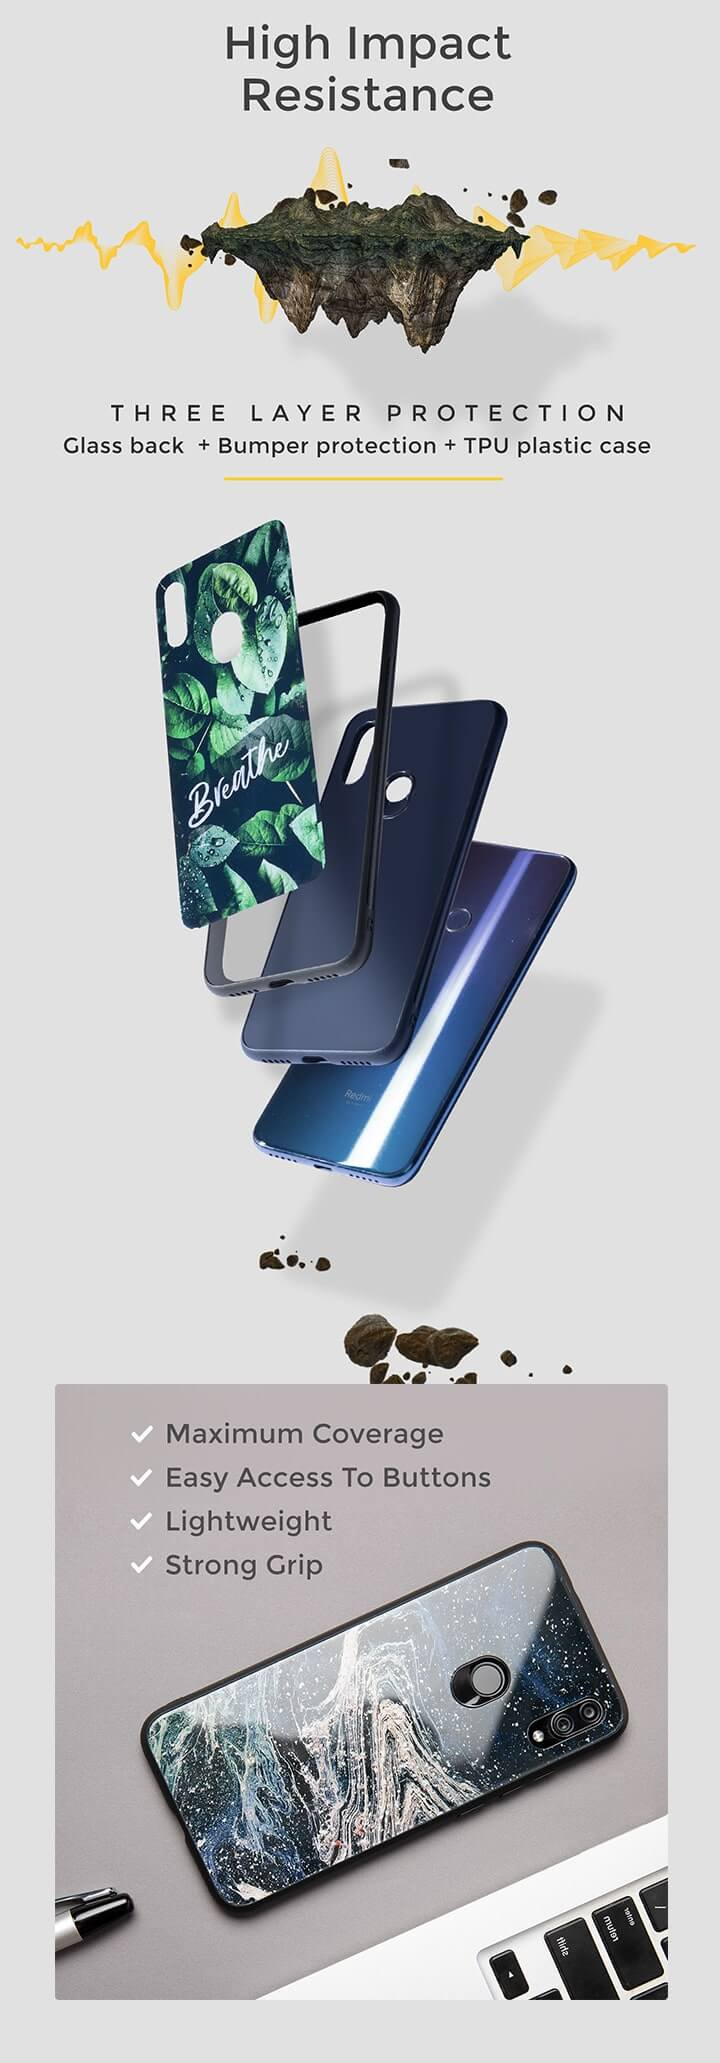 Fabric Feels OnePlus 7 Pro Glass Mobile Cover Description Image Mobile Site 1@Bewakoof.com